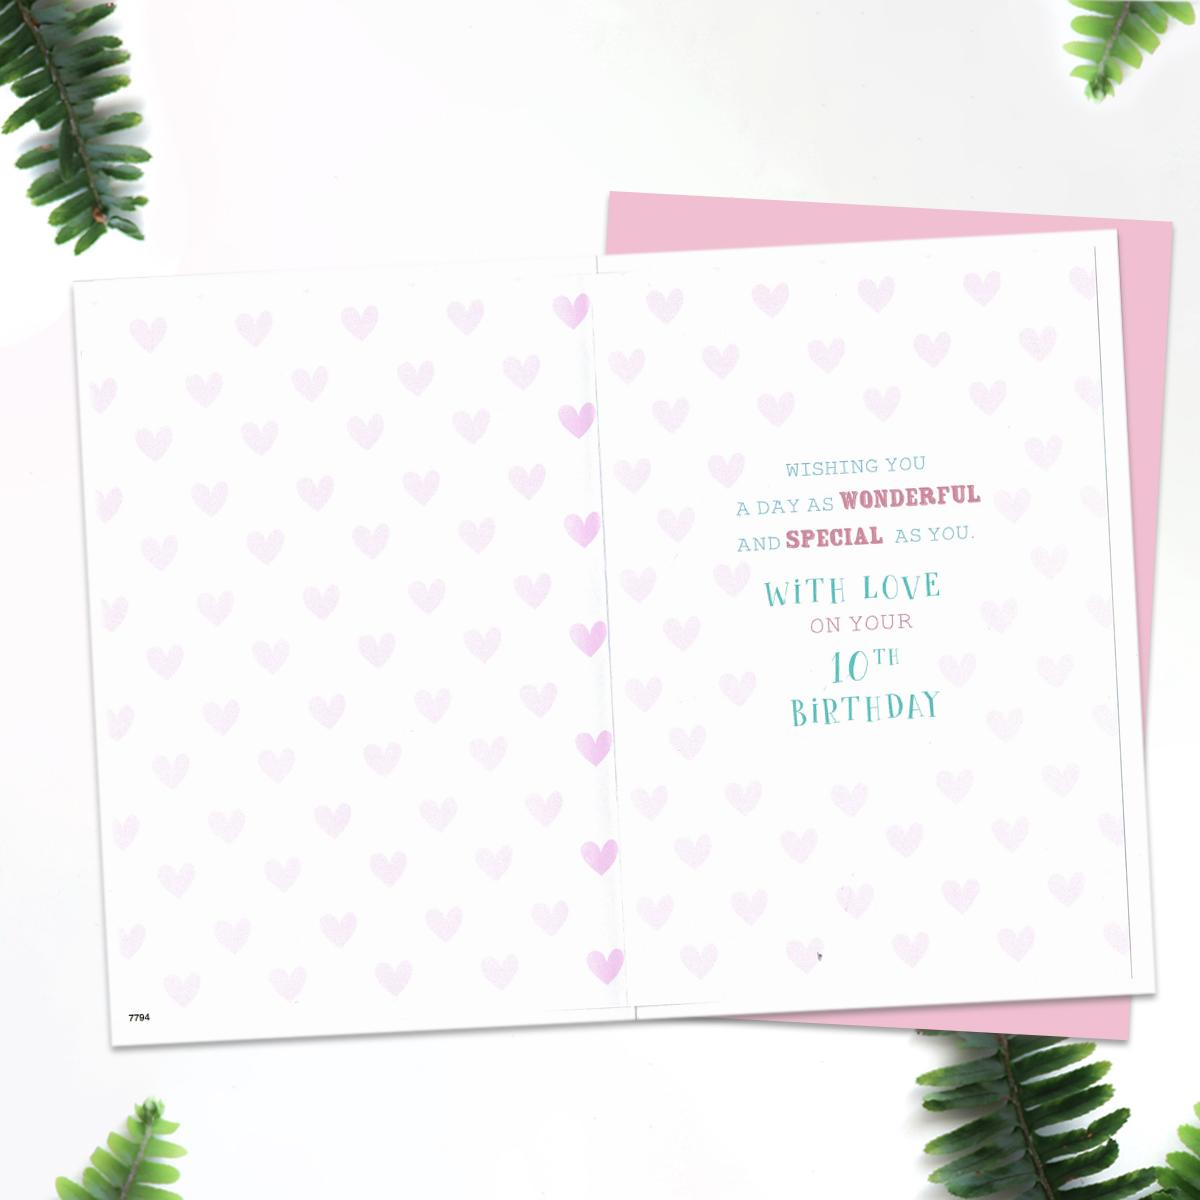 Printed Insert With Pink Hearts And Verse